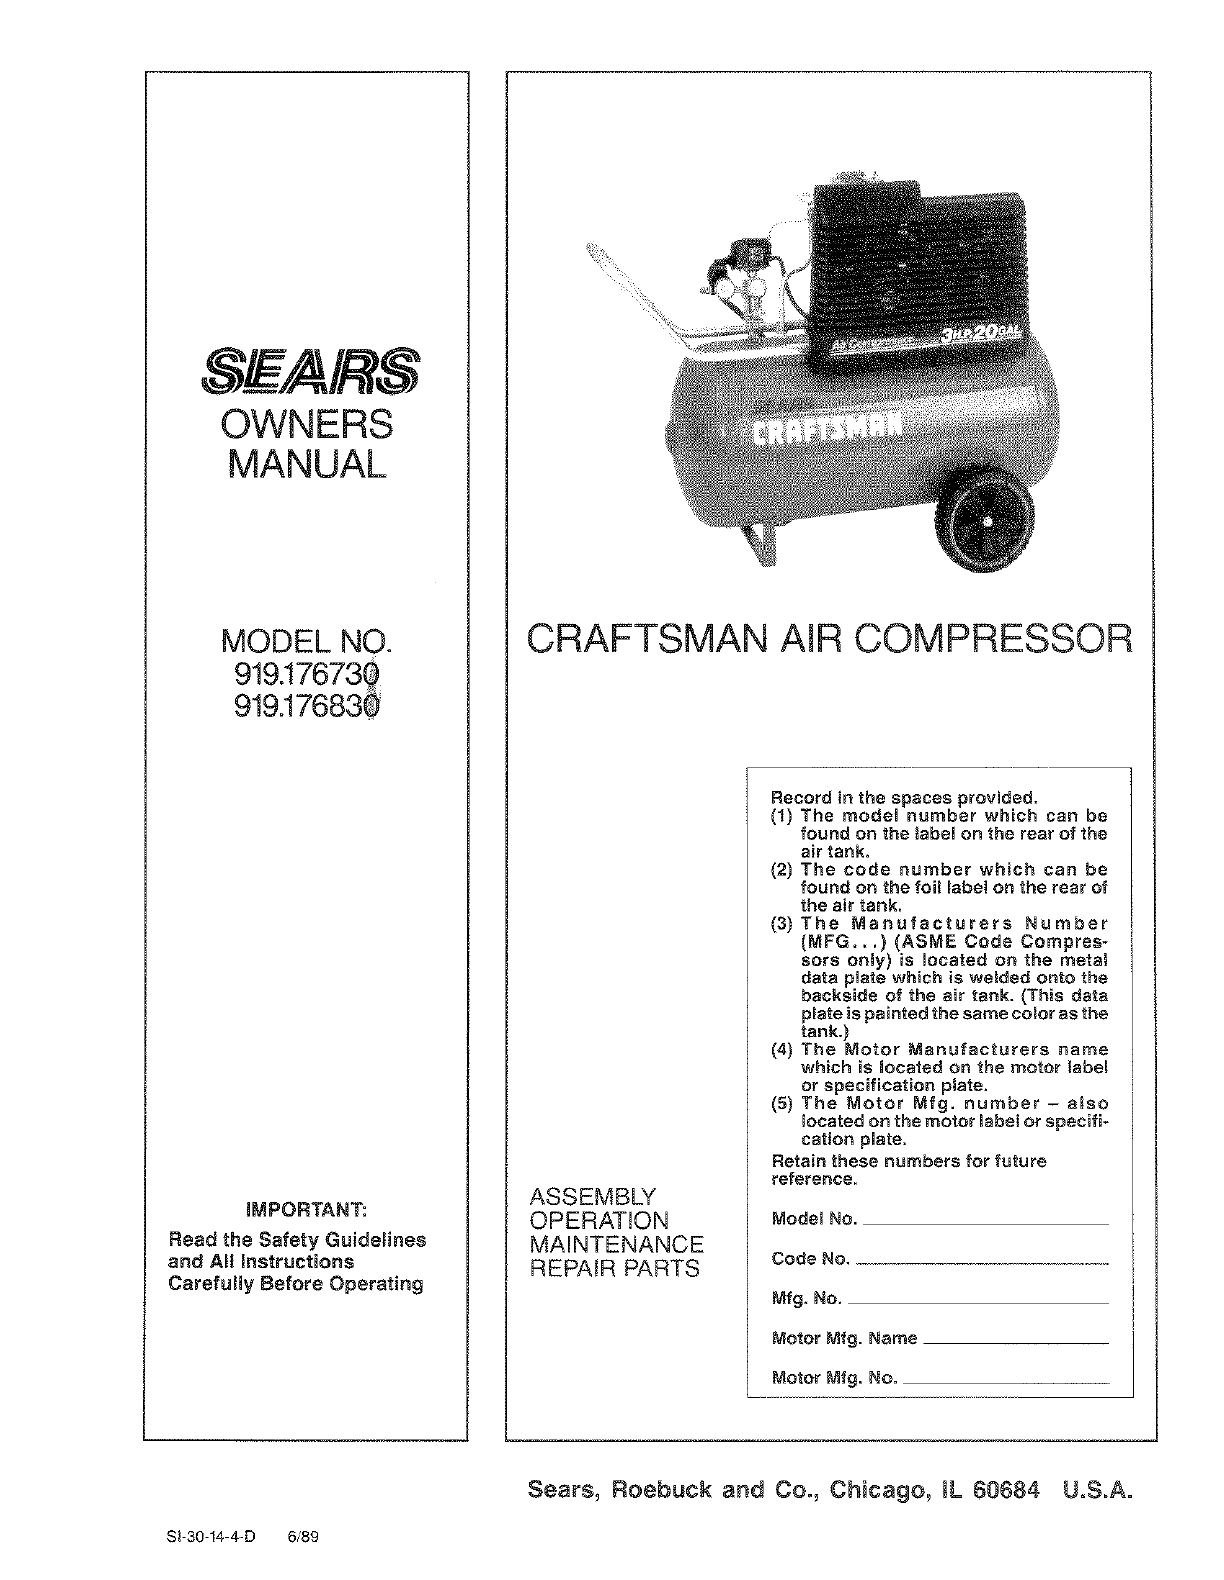 539623fc 6afd 459d a112 77bb4e7aa7db bg1 craftsman air compressor 919 176830 user guide manualsonline com sears 1 hp air compressor wiring diagram at crackthecode.co